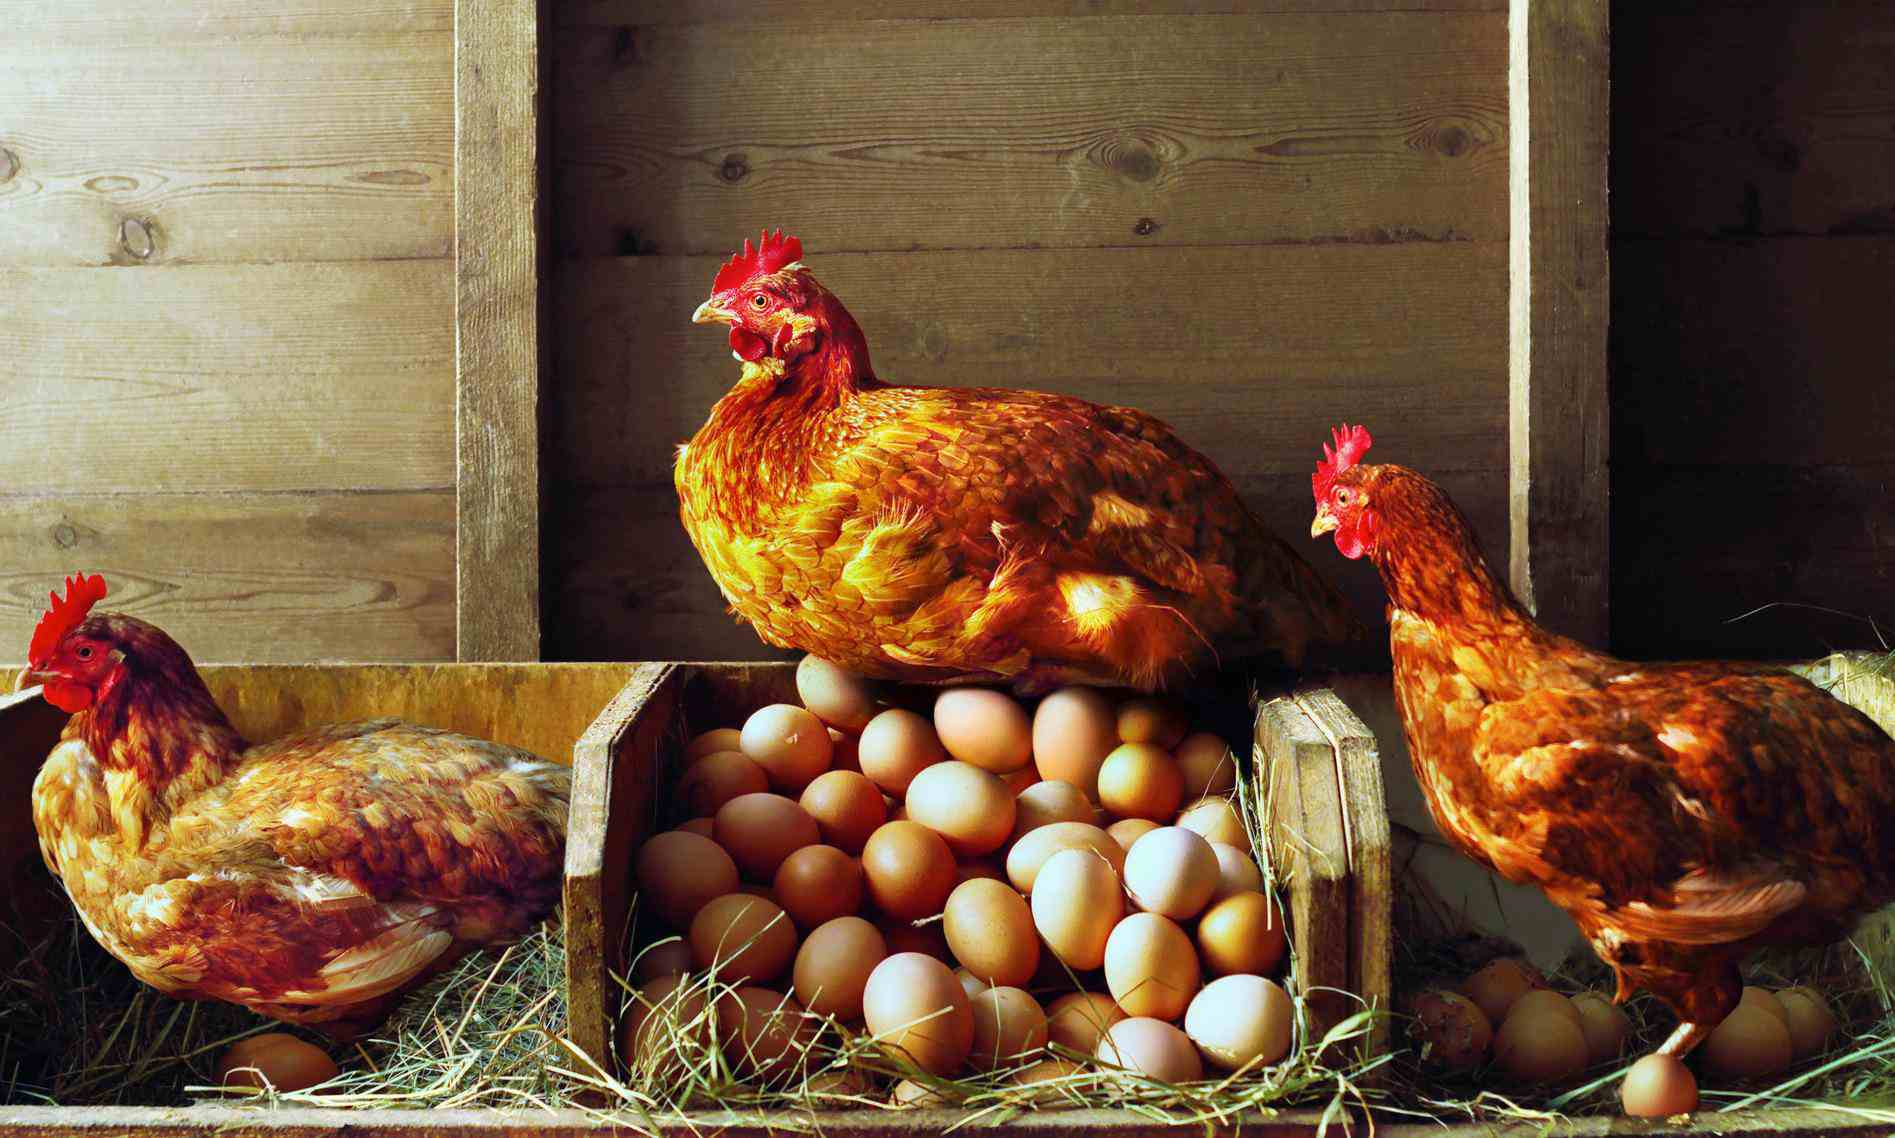 A set of hens on piles of eggs